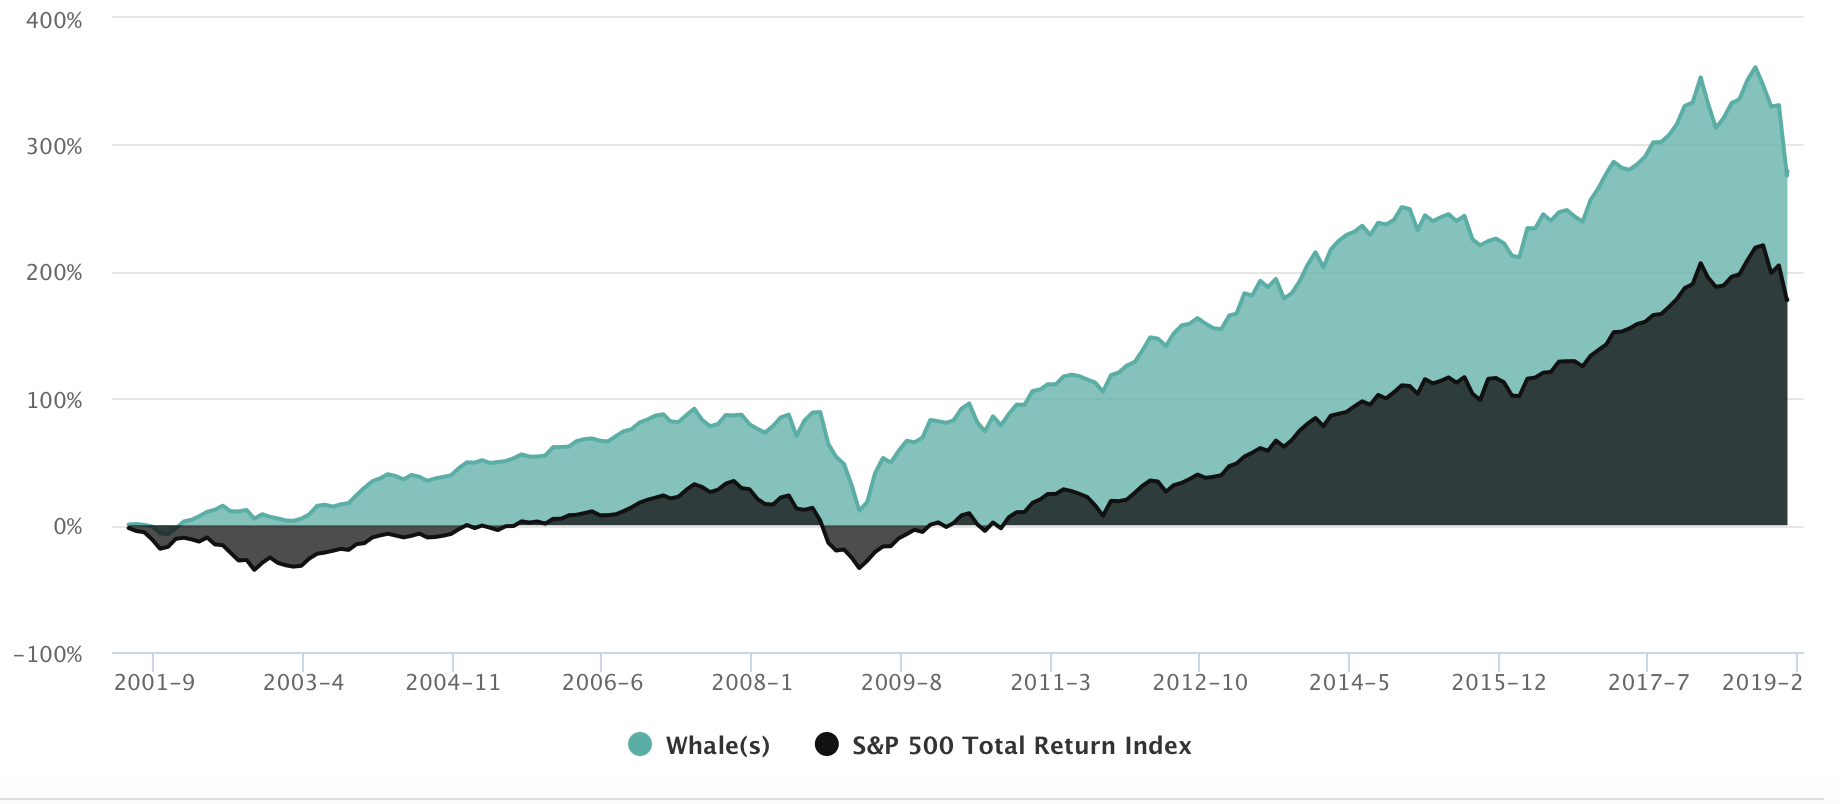 Please note - this is not the *actual* performance of Berkshire, but rather what a copycat investor could do using Whale Wisdom with data available 46 days after filing with the